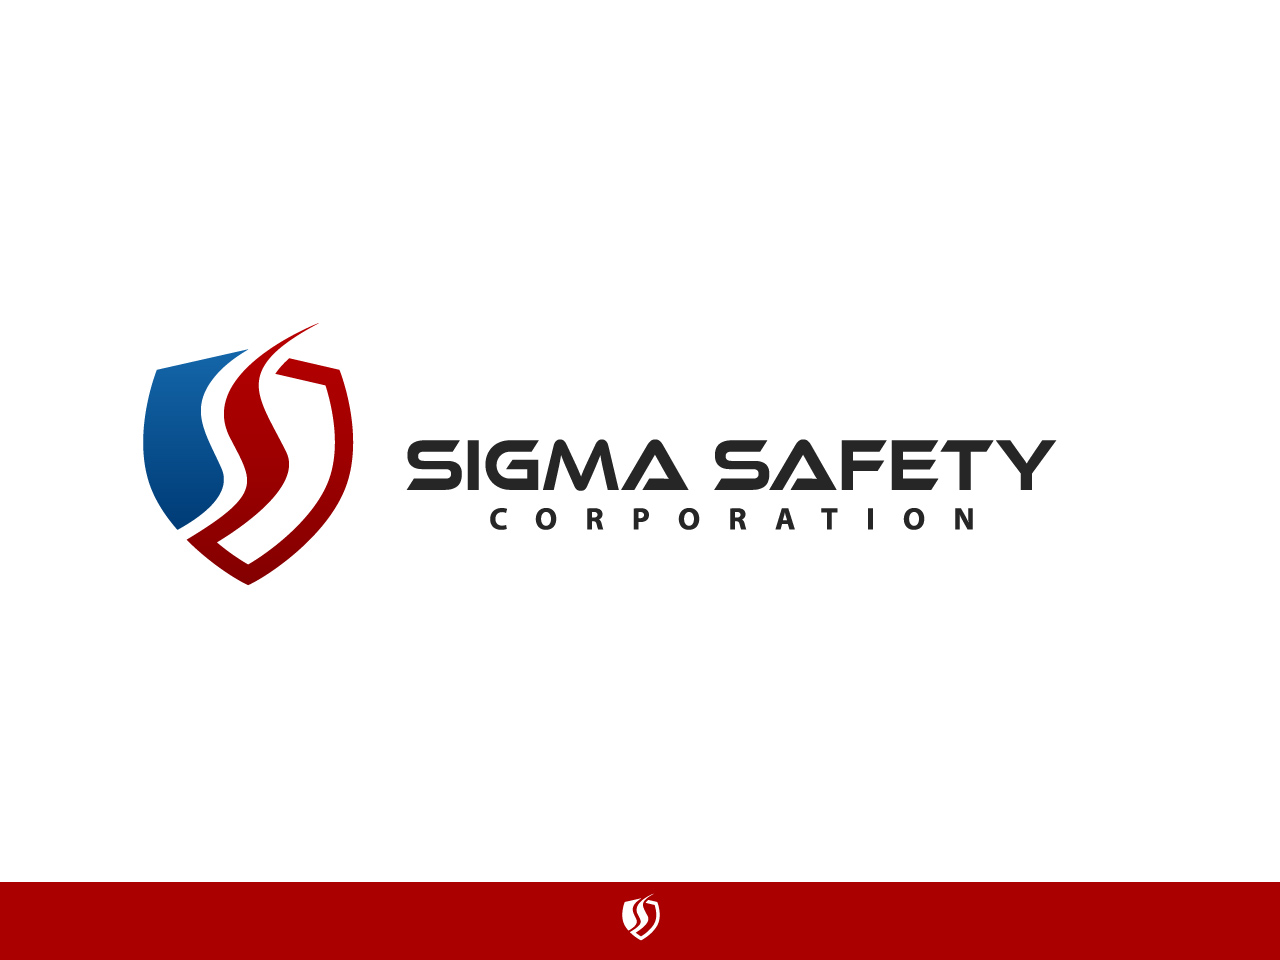 Logo Design by jpbituin - Entry No. 231 in the Logo Design Contest Creative Logo Design for Sigma Safety Corporation.